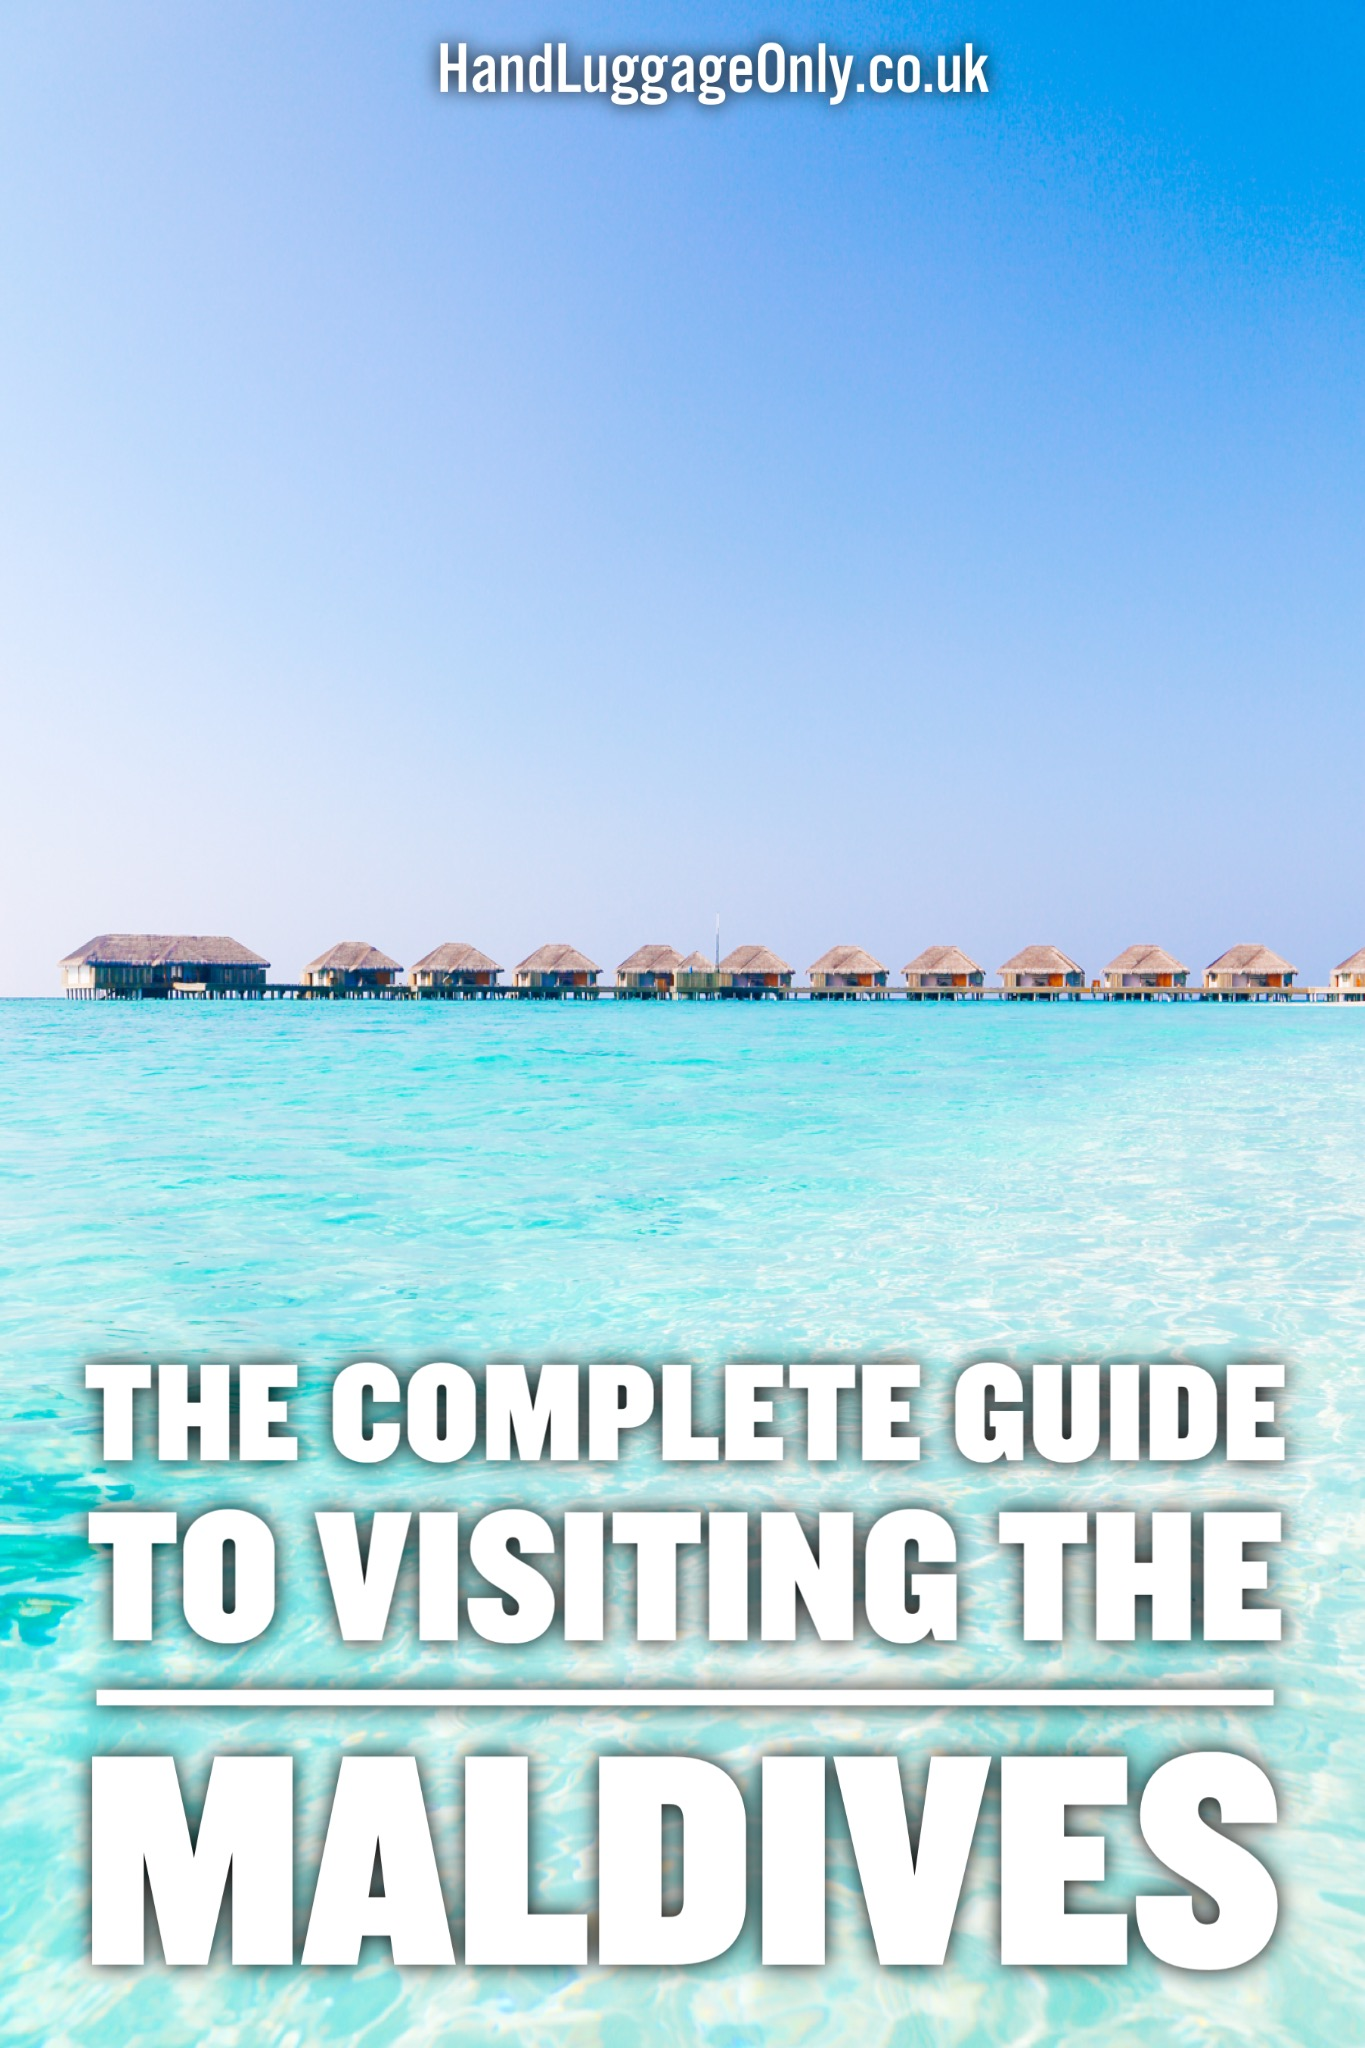 The Complete Guide To Visiting The Maldives